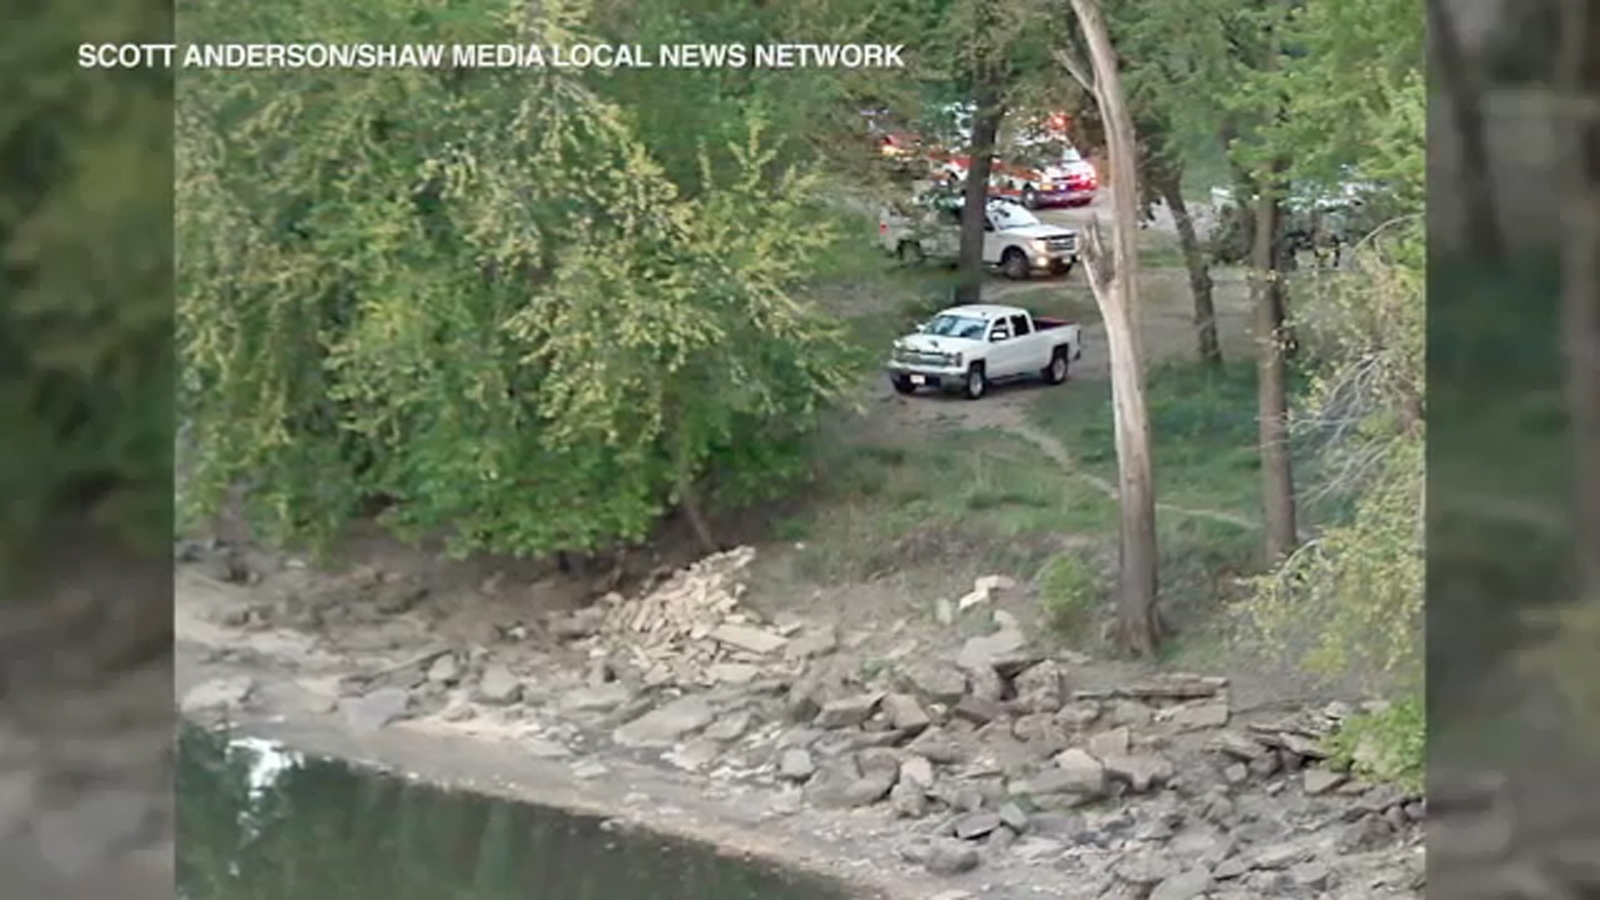 3 killed in explosion near Starved Rock State Park were apparently fishing, coroner says